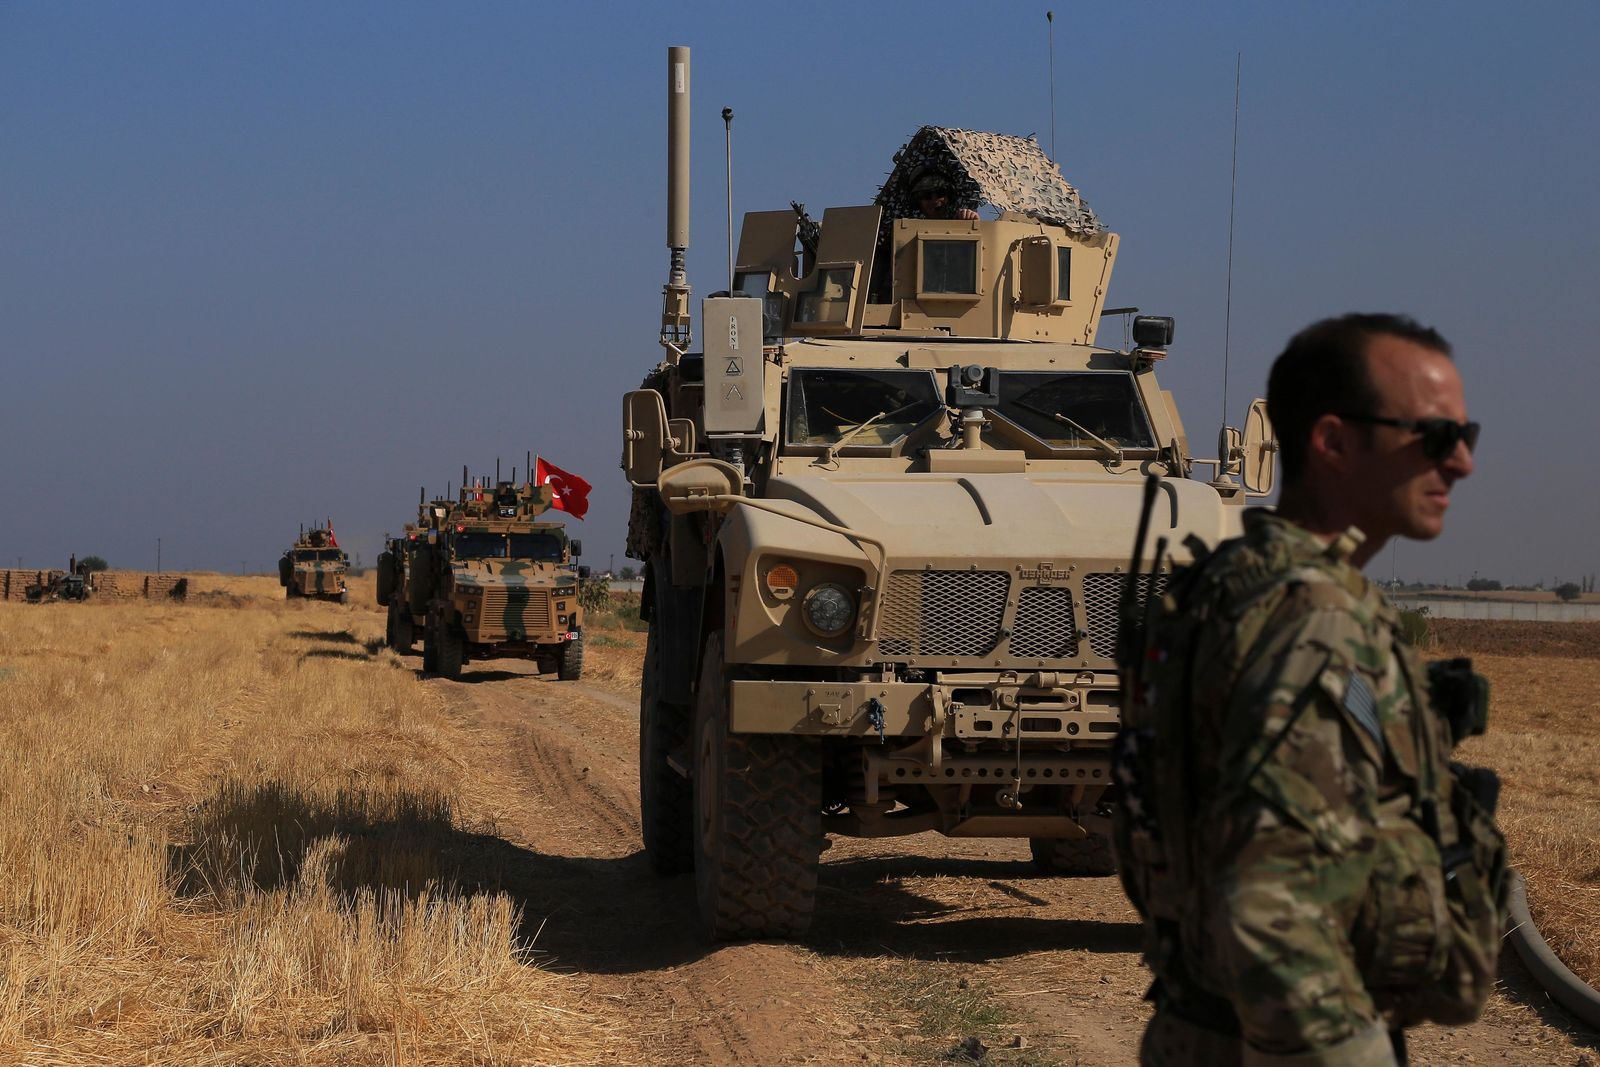 "Turkish and American armored vehicles patrol as they conduct joint ground patrol in the so-called ""safe zone"" on the Syrian side of the border with Turkey, near the town of Tal Abyad, northeastern Syria, Friday, Oct.4, 2019. The patrols are part of a deal reached between Turkey and the United States to ease tensions between the allies over the presence of U.S.-backed Syrian Kurdish fighters in the area. (AP Photo/Baderkhan Ahmad)"